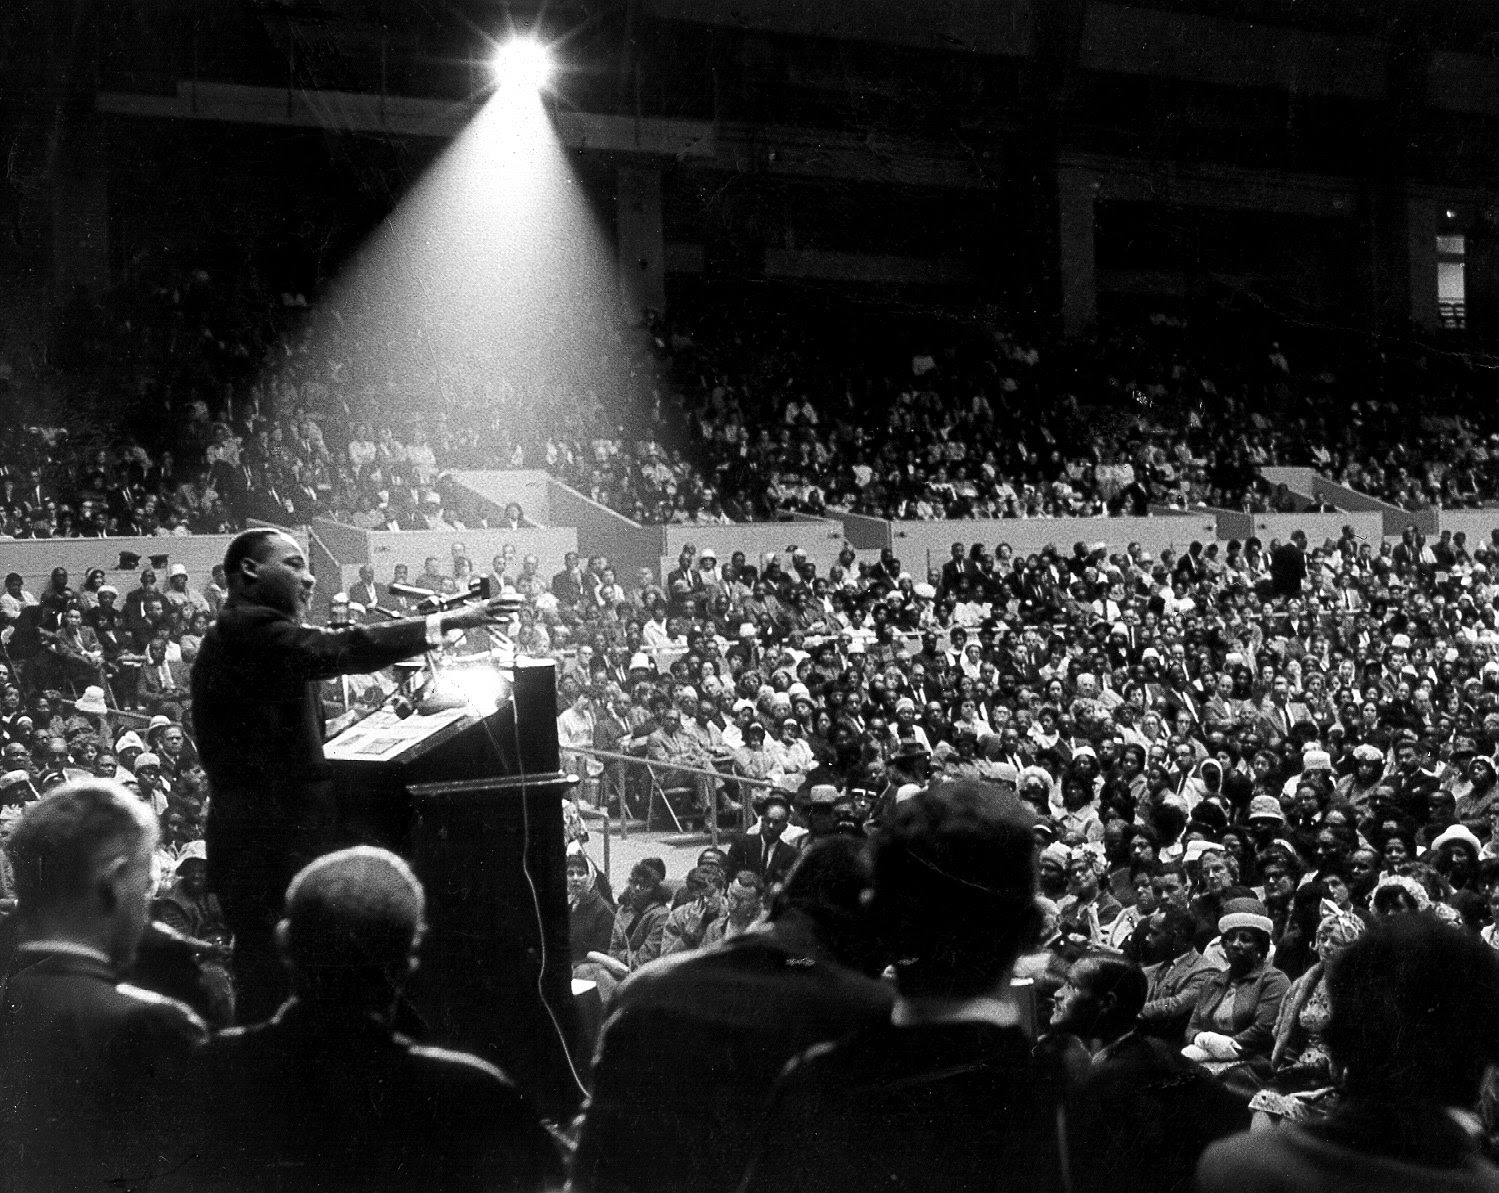 Martin Luther King Jr. speaking at a rally.